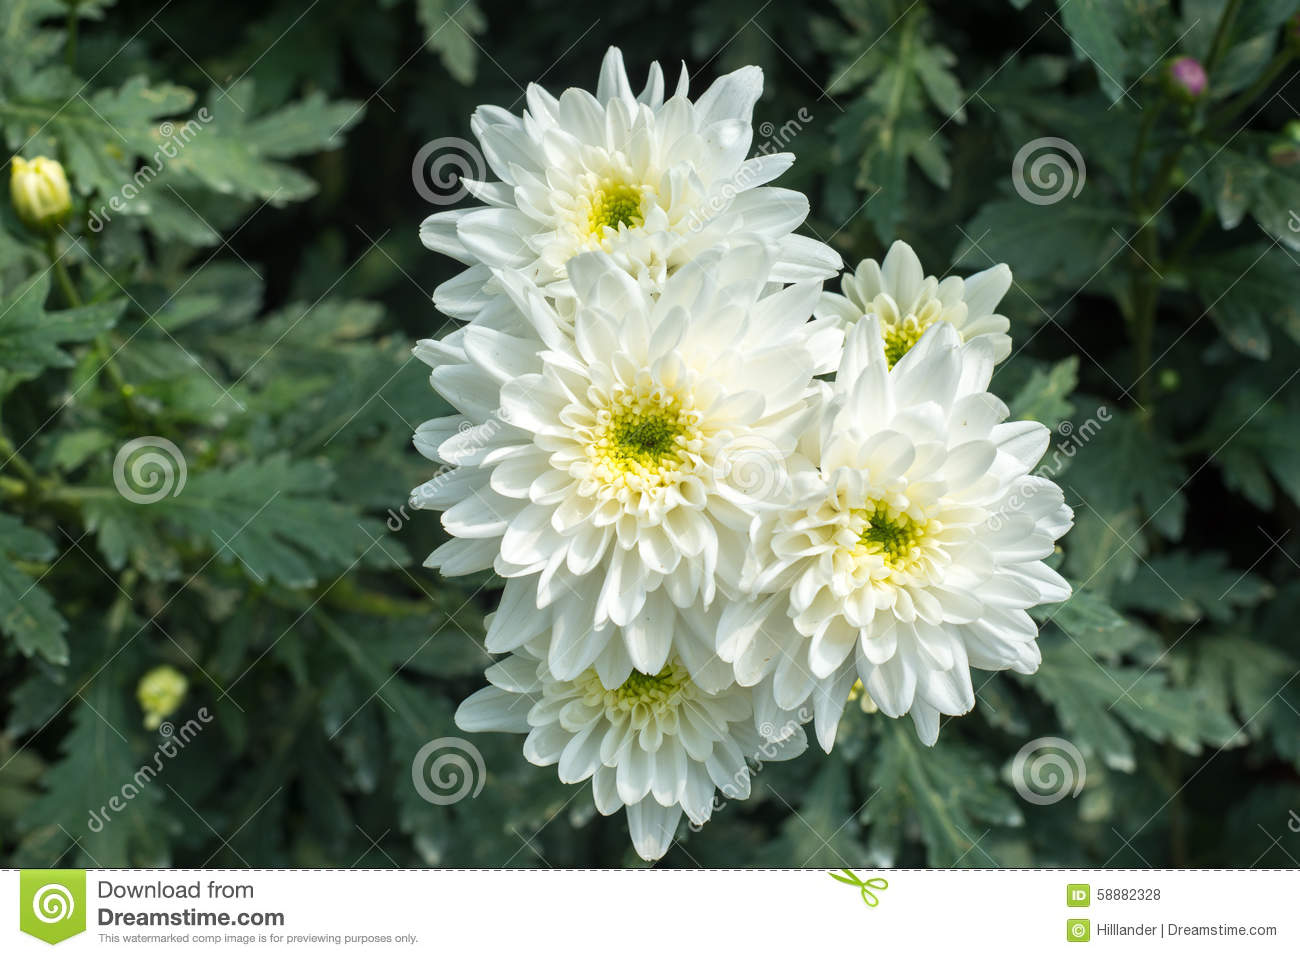 Beautiful white blossom Chrysanthemums inside green house, a popular plant of the daisy family